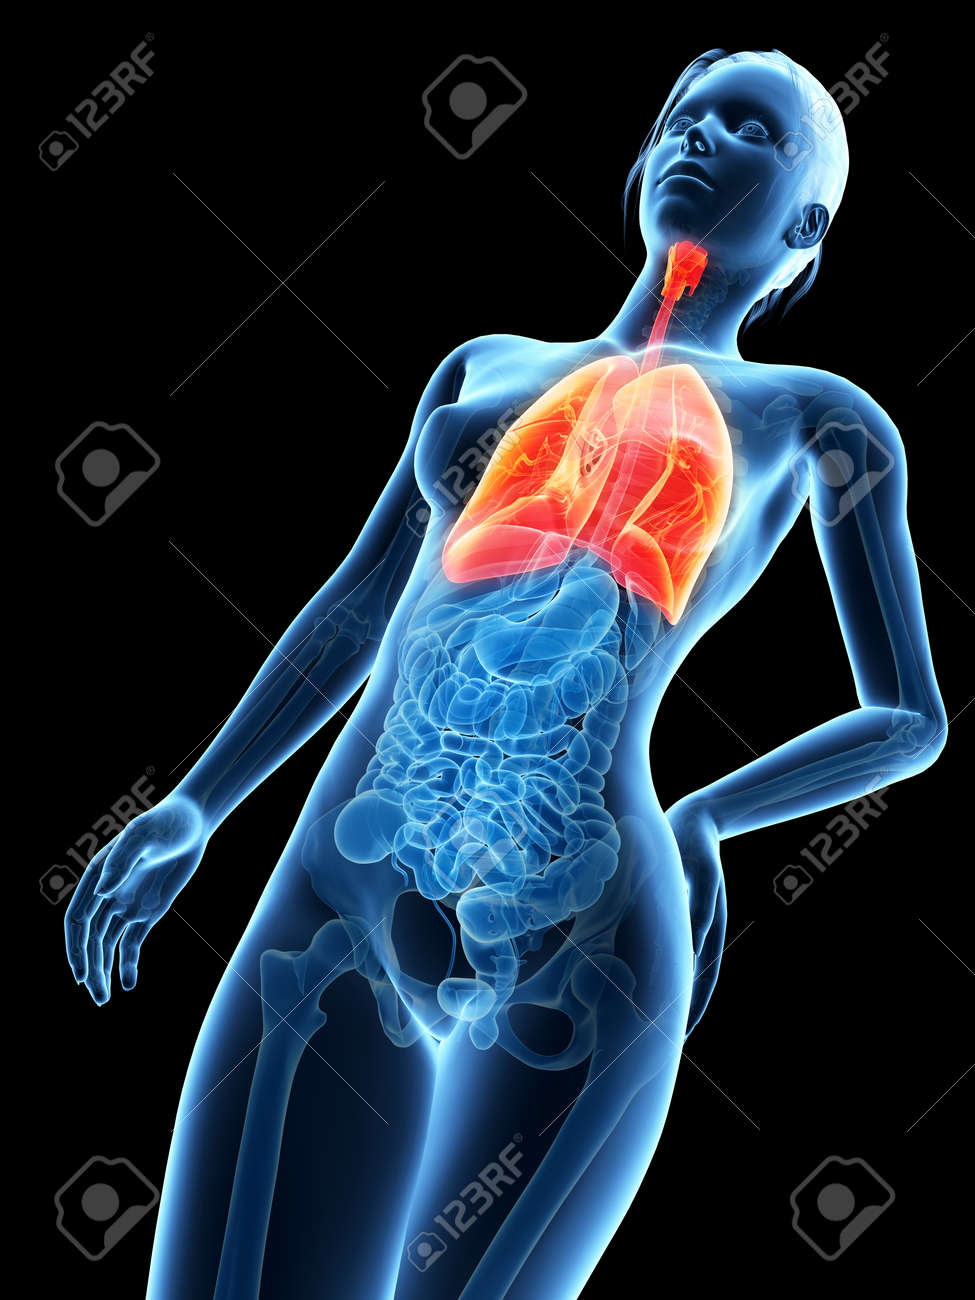 Medical 3d Illustration - Female Anatomy - Lung Stock Photo, Picture ...